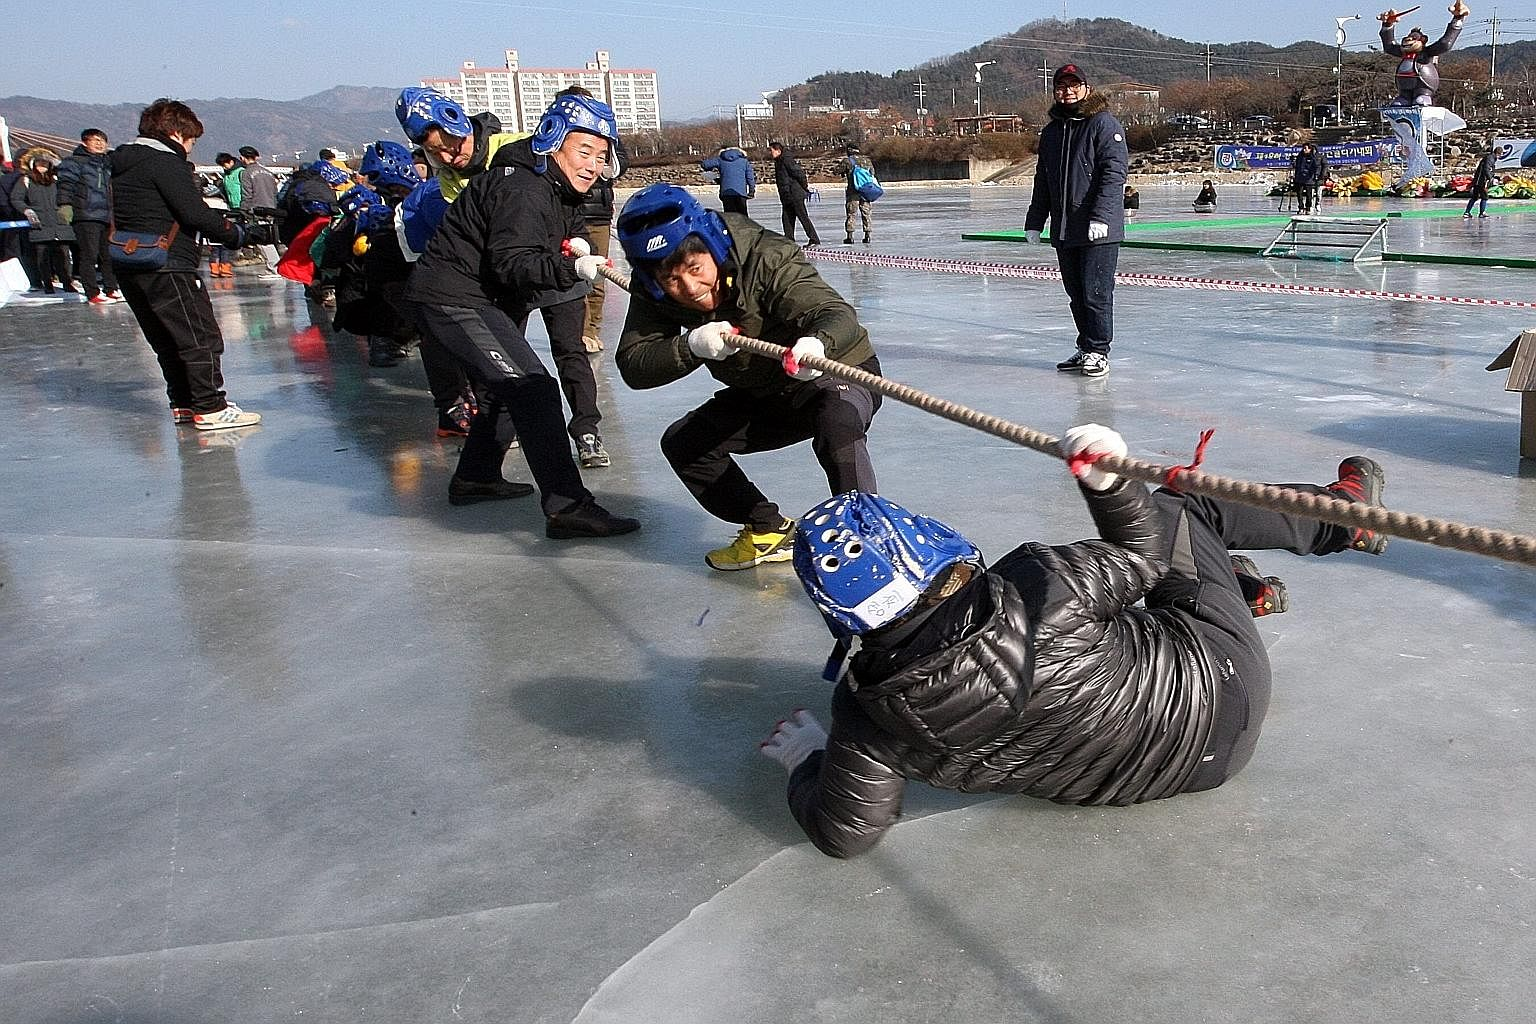 South Koreans enjoying a tug-of-war at a winter festival in Gangwon province over the weekend as the country shivered to a cold wave with temperatures dropping to as low as -20 deg C.